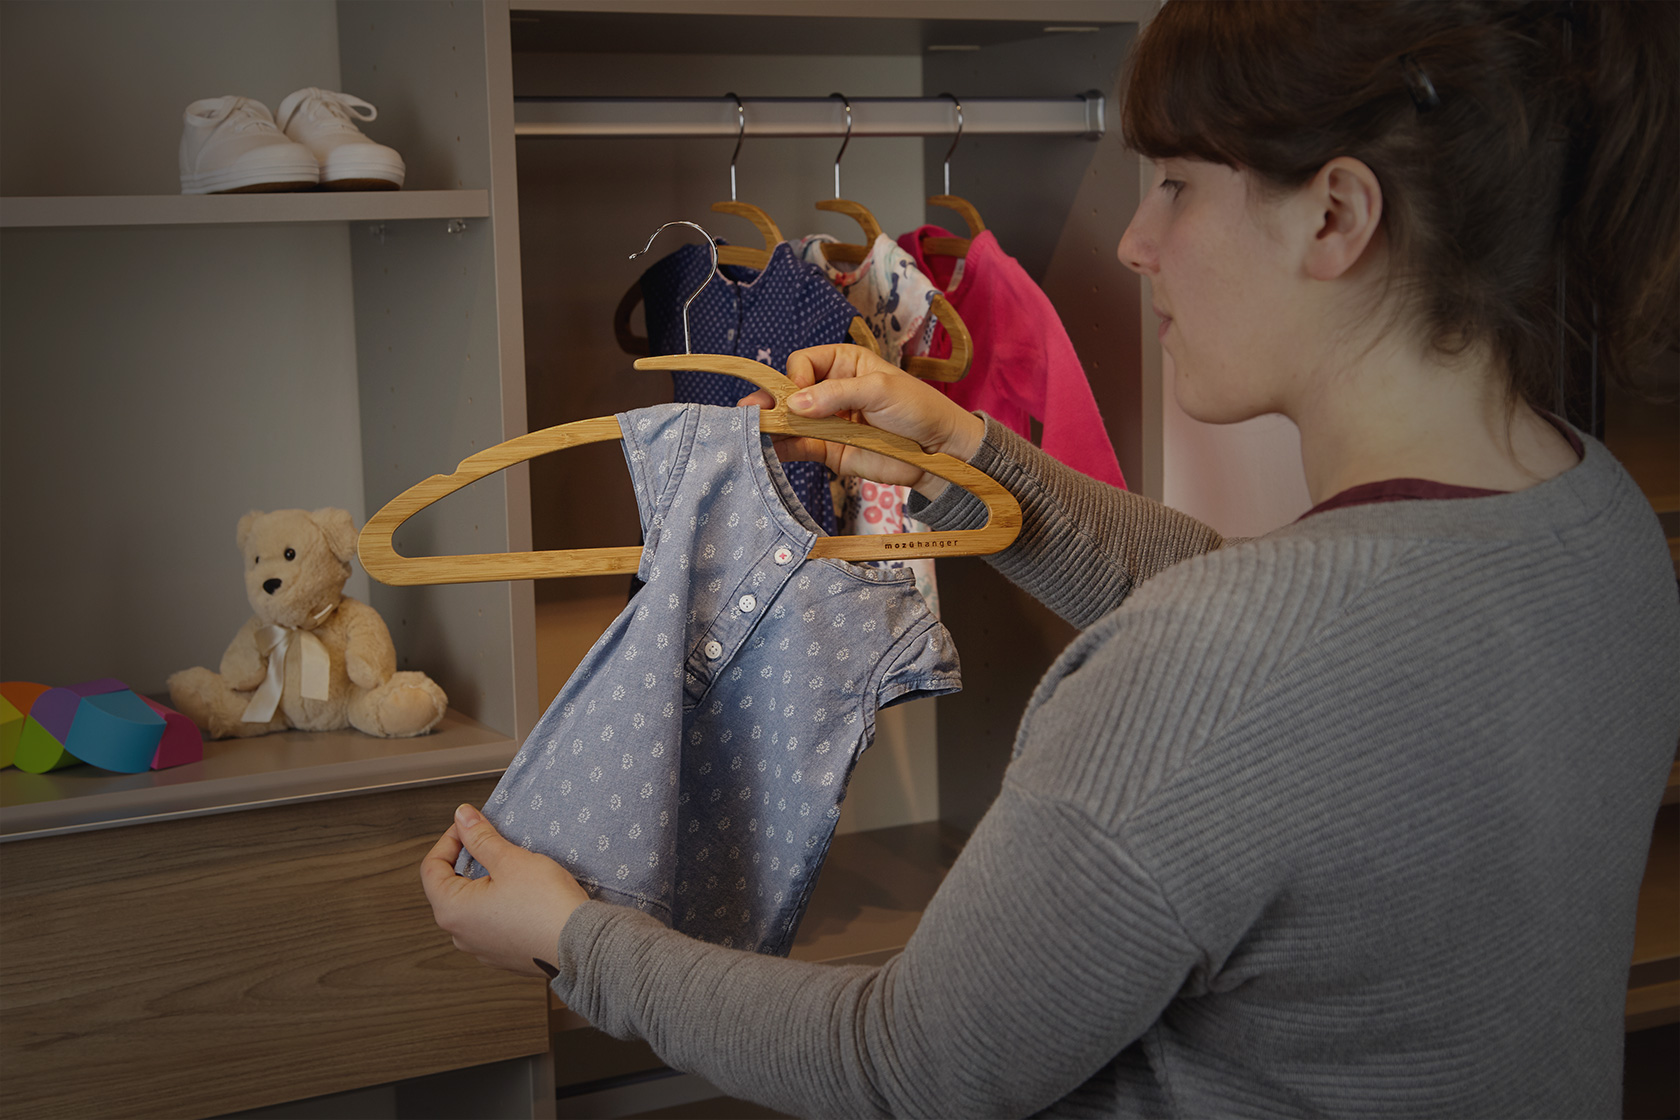 The Mozu Hanger can be used from infant clothing all the way up to adulthood